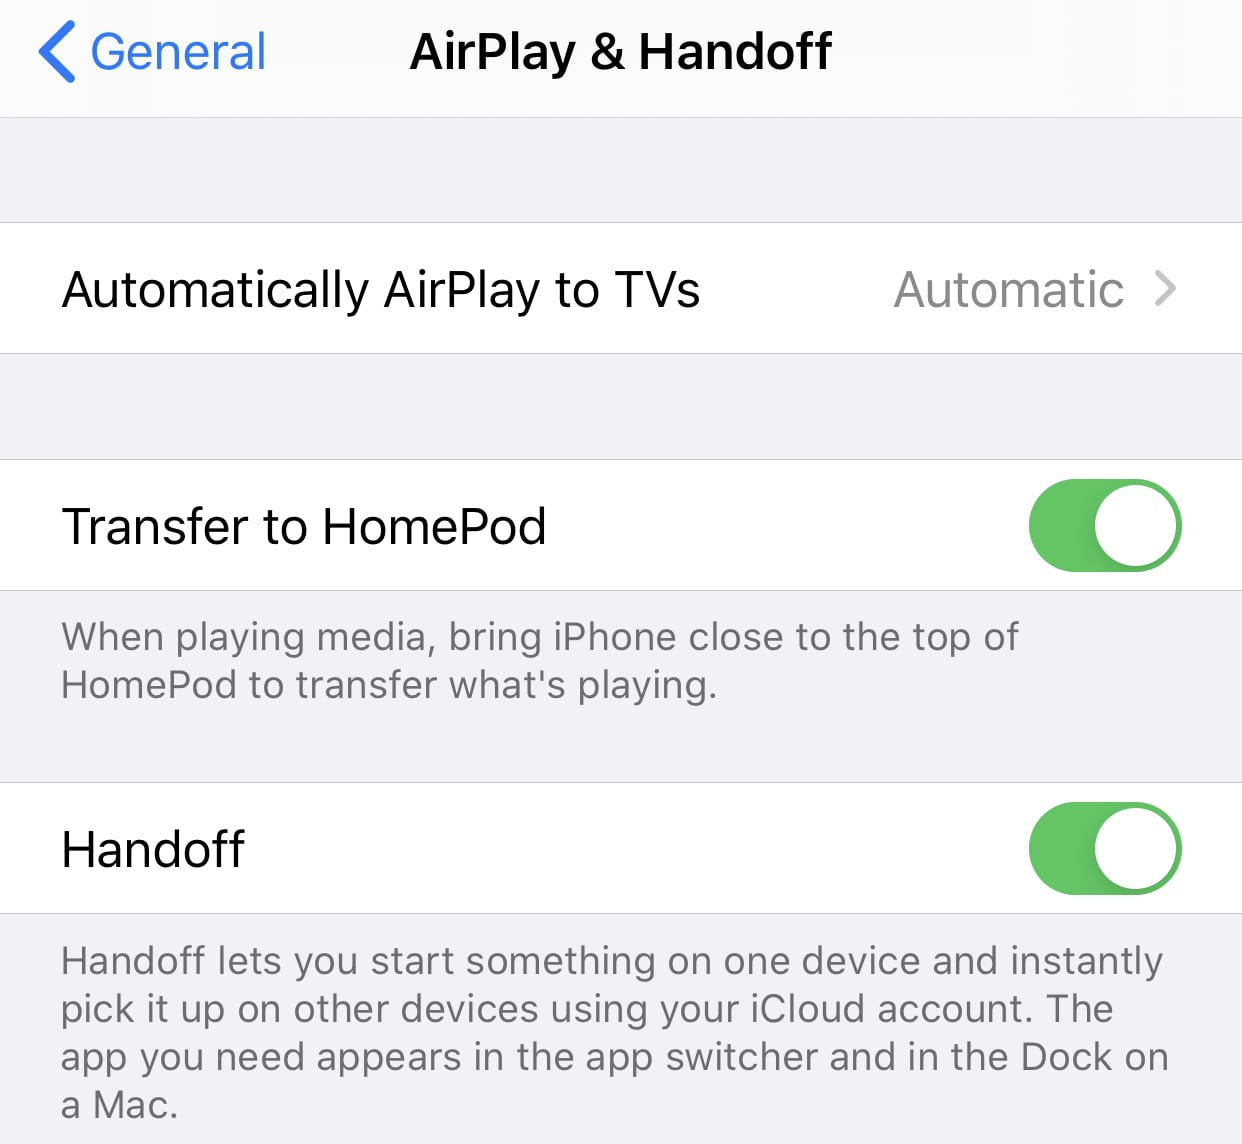 AirPlay & Handoff iOS 13.2